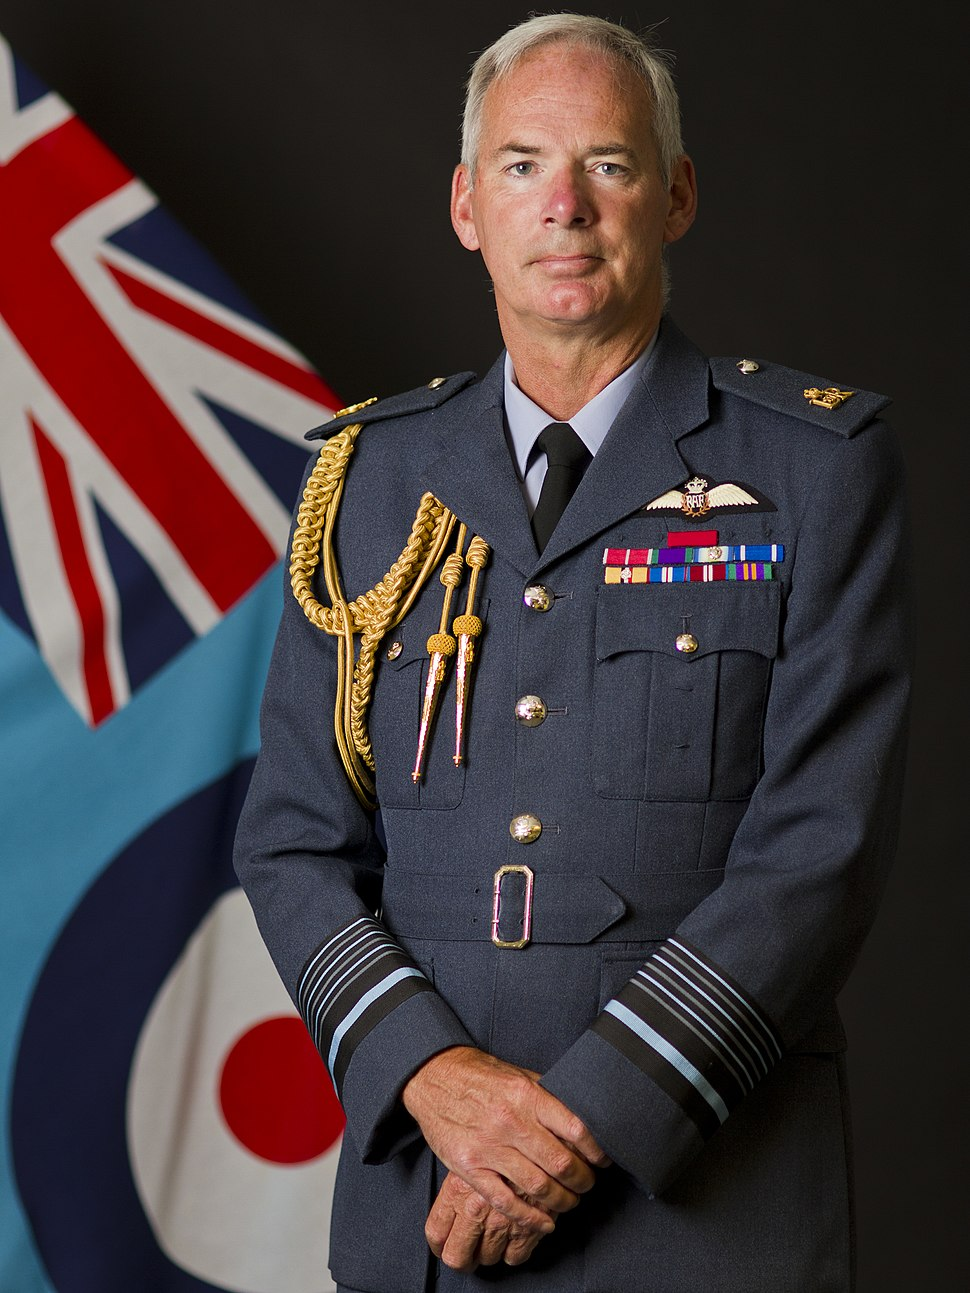 Chief of the Air Staff, Air Chief Marshal Sir Andrew Pulford MOD 45155744